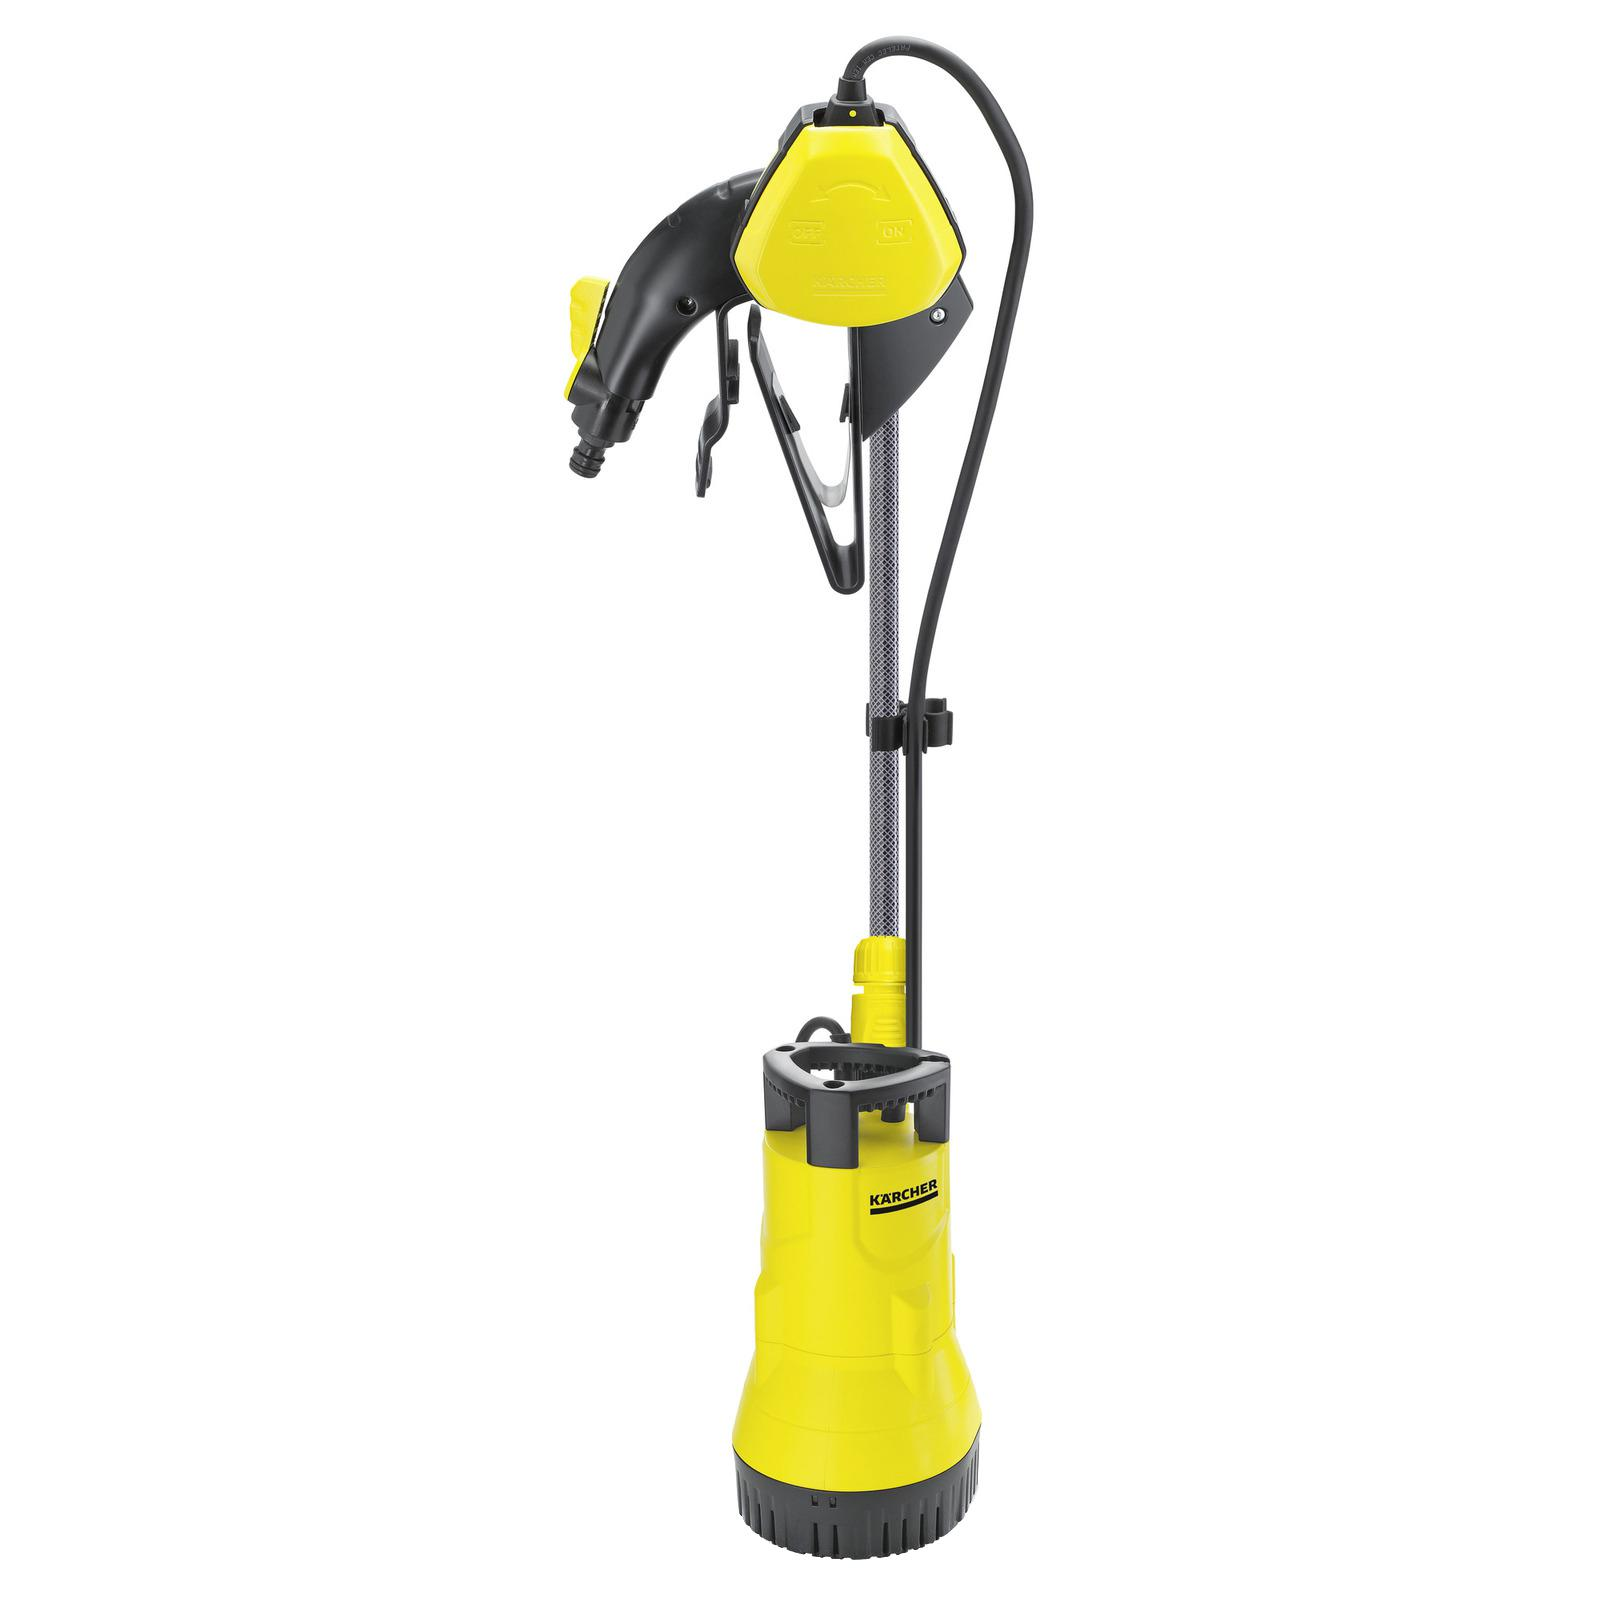 Бочковой насос Karcher Bp 1 barrel насос karcher bp 2 garden